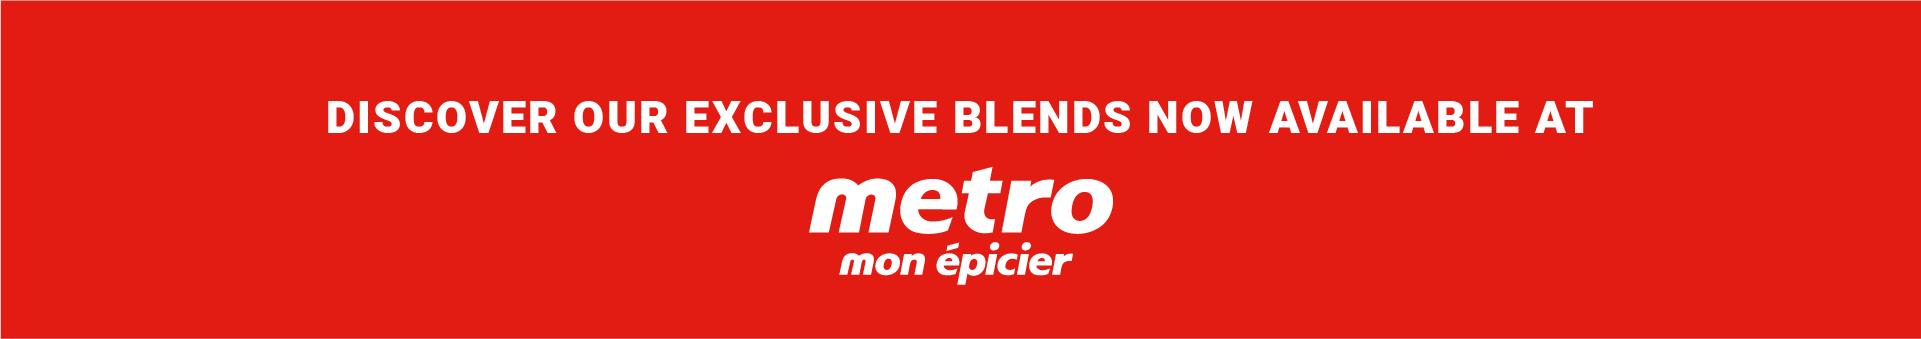 Discover our exclusive coffee blends at Metro